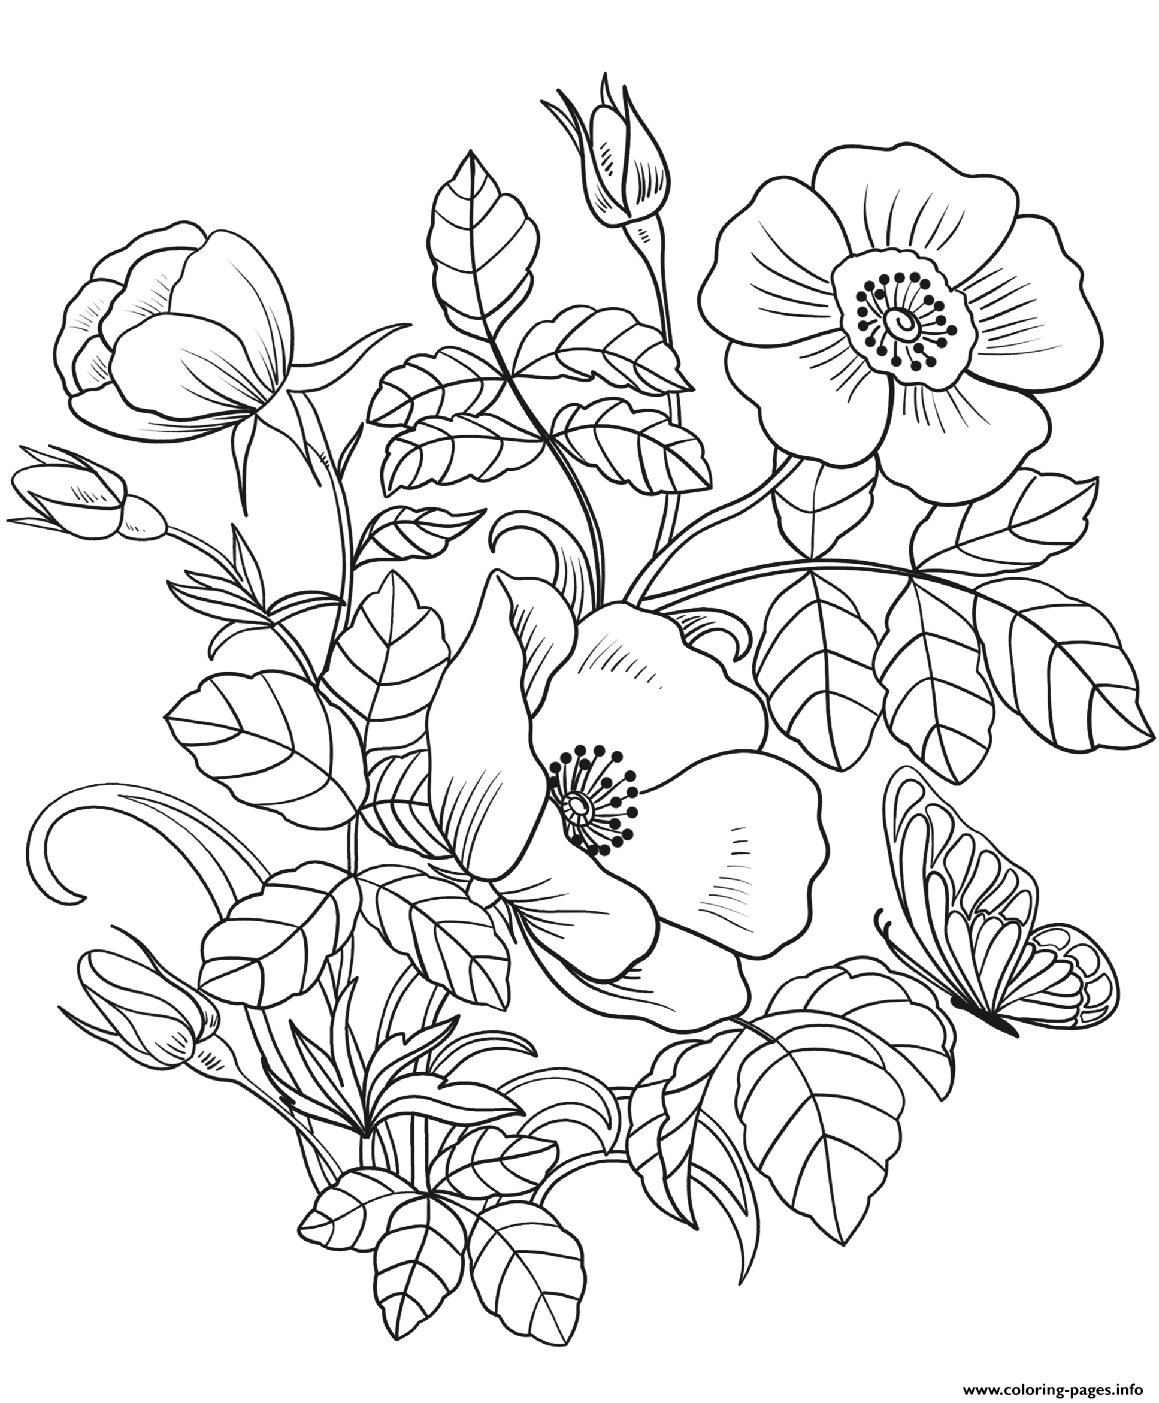 flowers coloring pages printable detailed flower coloring pages to download and print for free printable coloring pages flowers